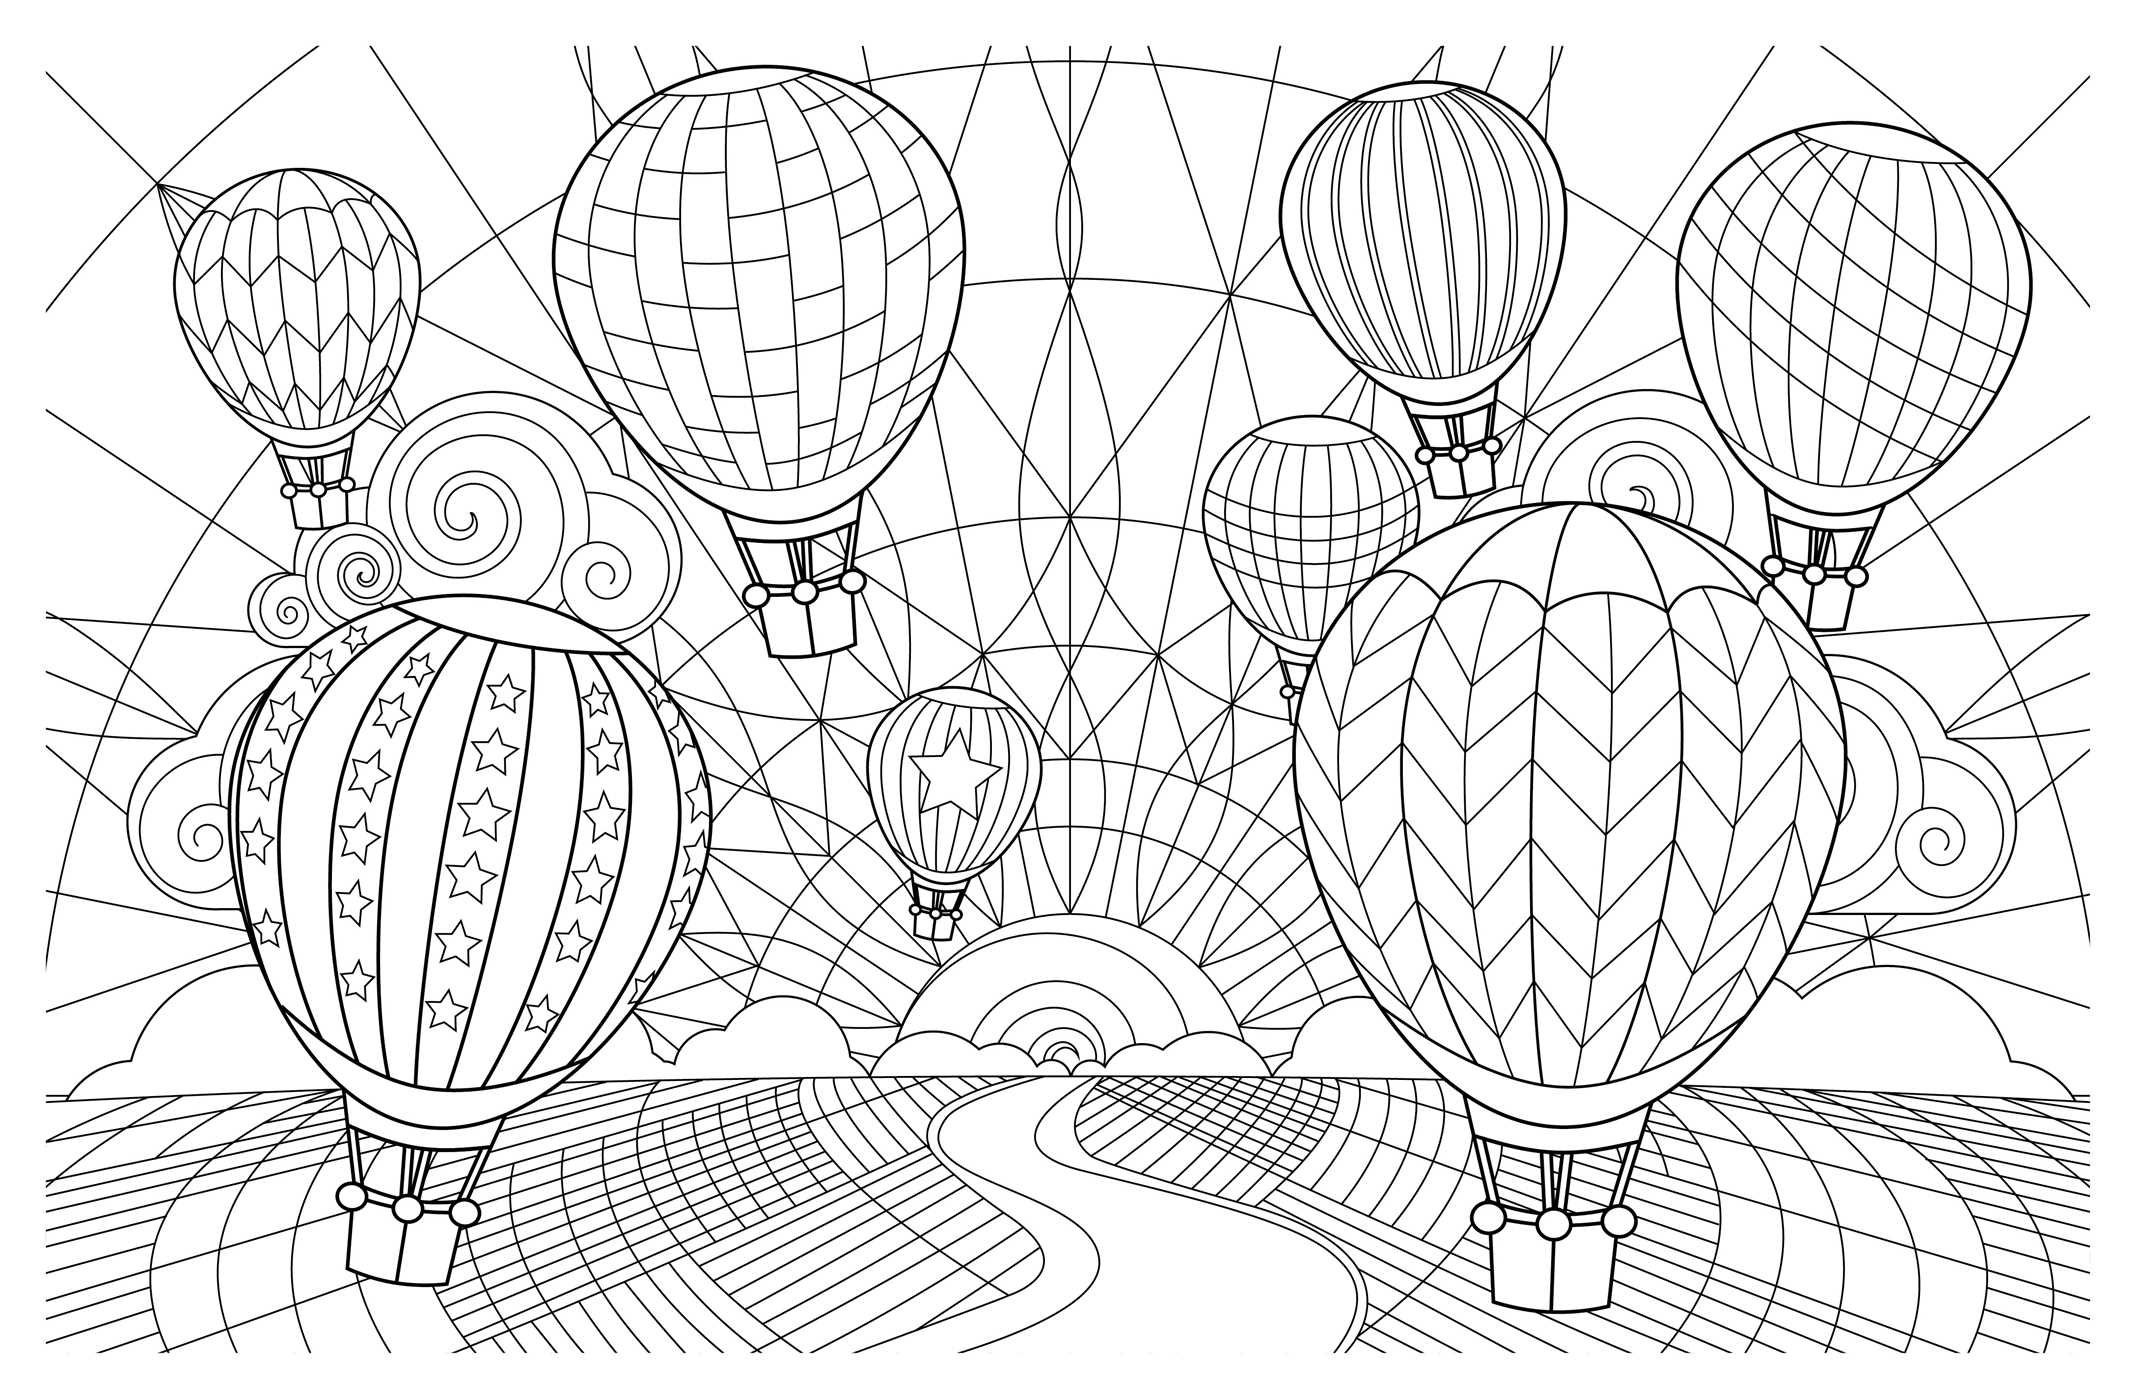 Amazon Posh Adult Coloring Book Artful Designs for Fun